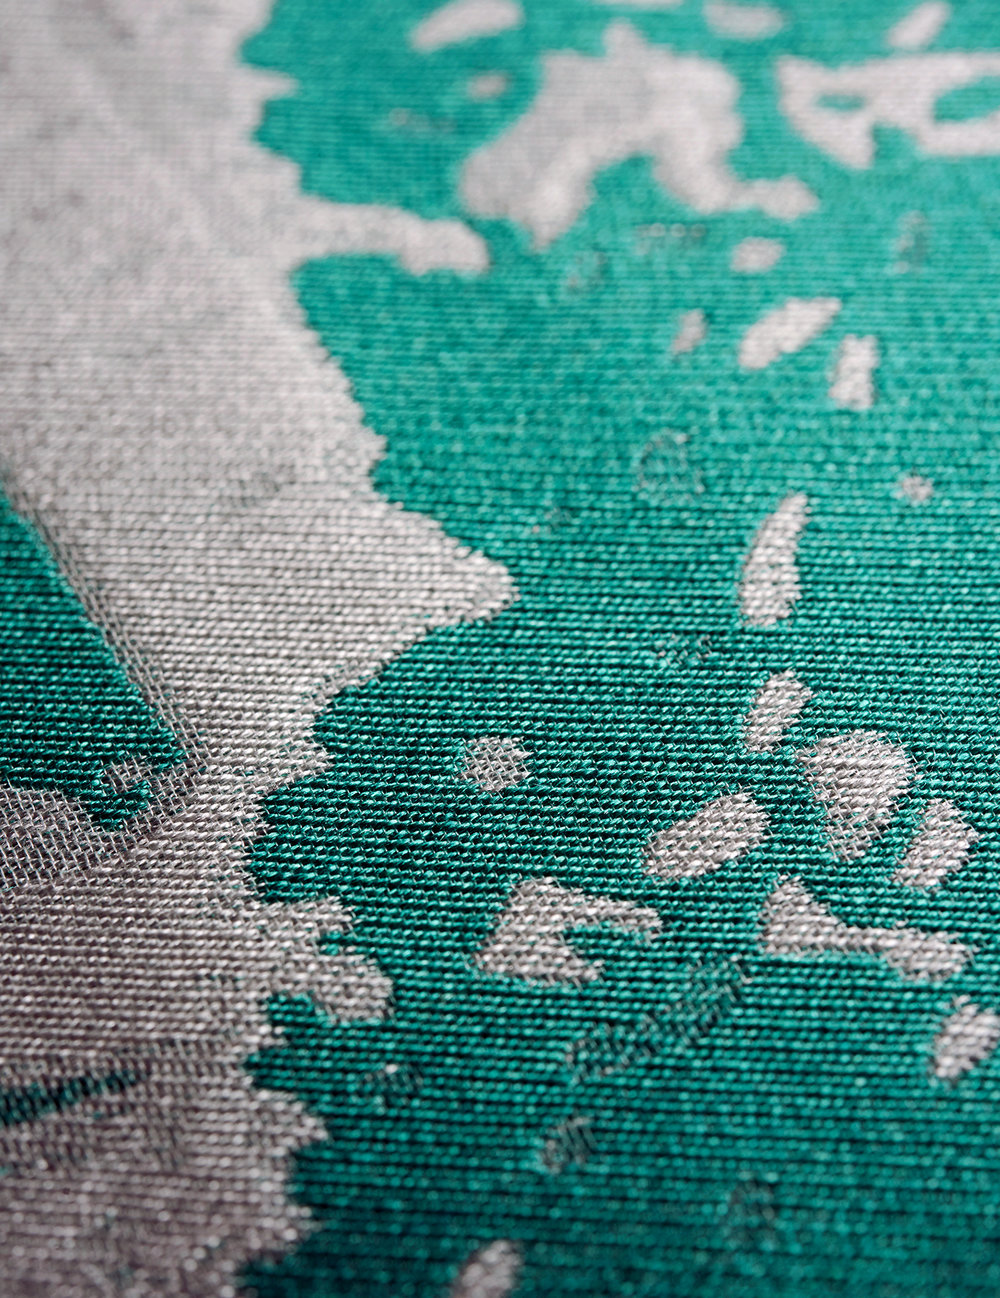 Graphic Jacquard - EXCLUSIVE TECHNIQUE, 16 PEOPLE1 FULL DAY TO WEAVE EACH SCARF.